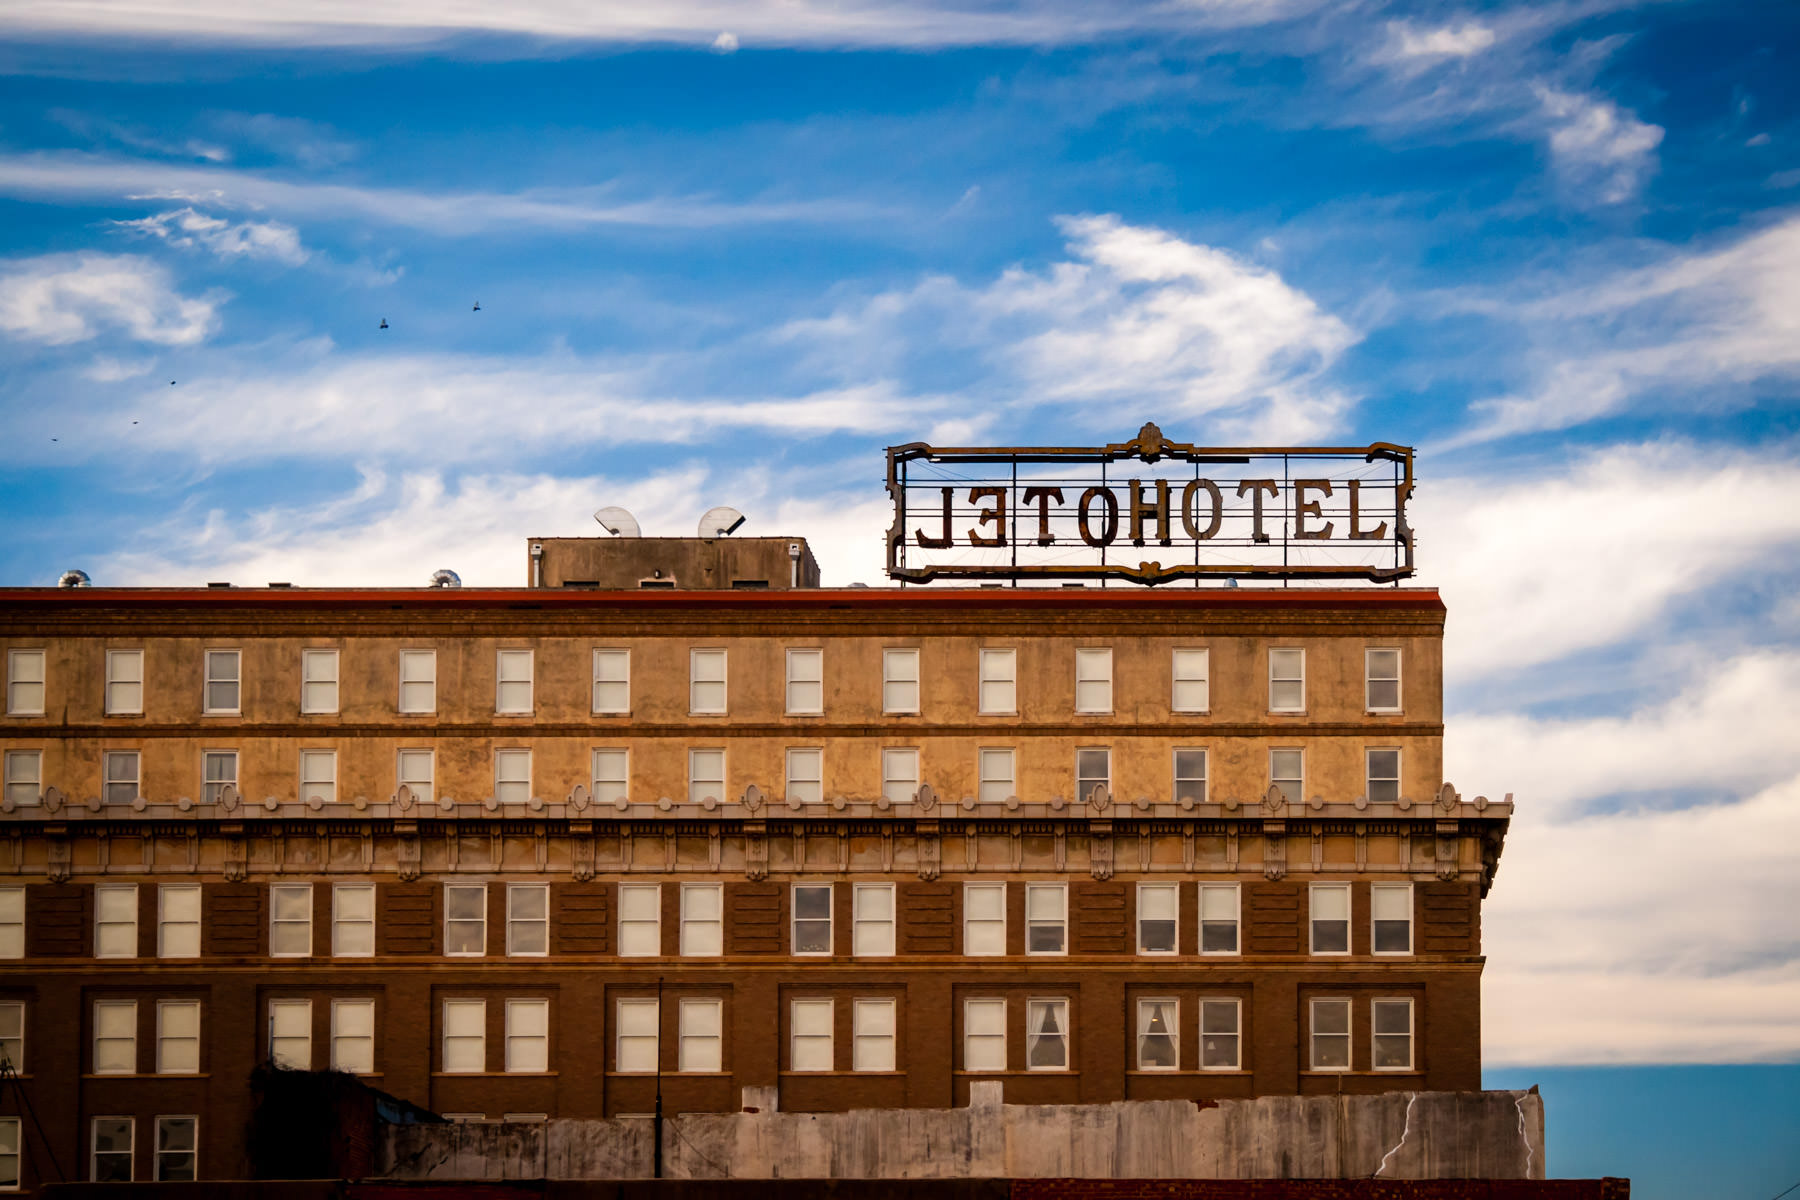 A hotel in Wichita Falls, Texas' downtown.